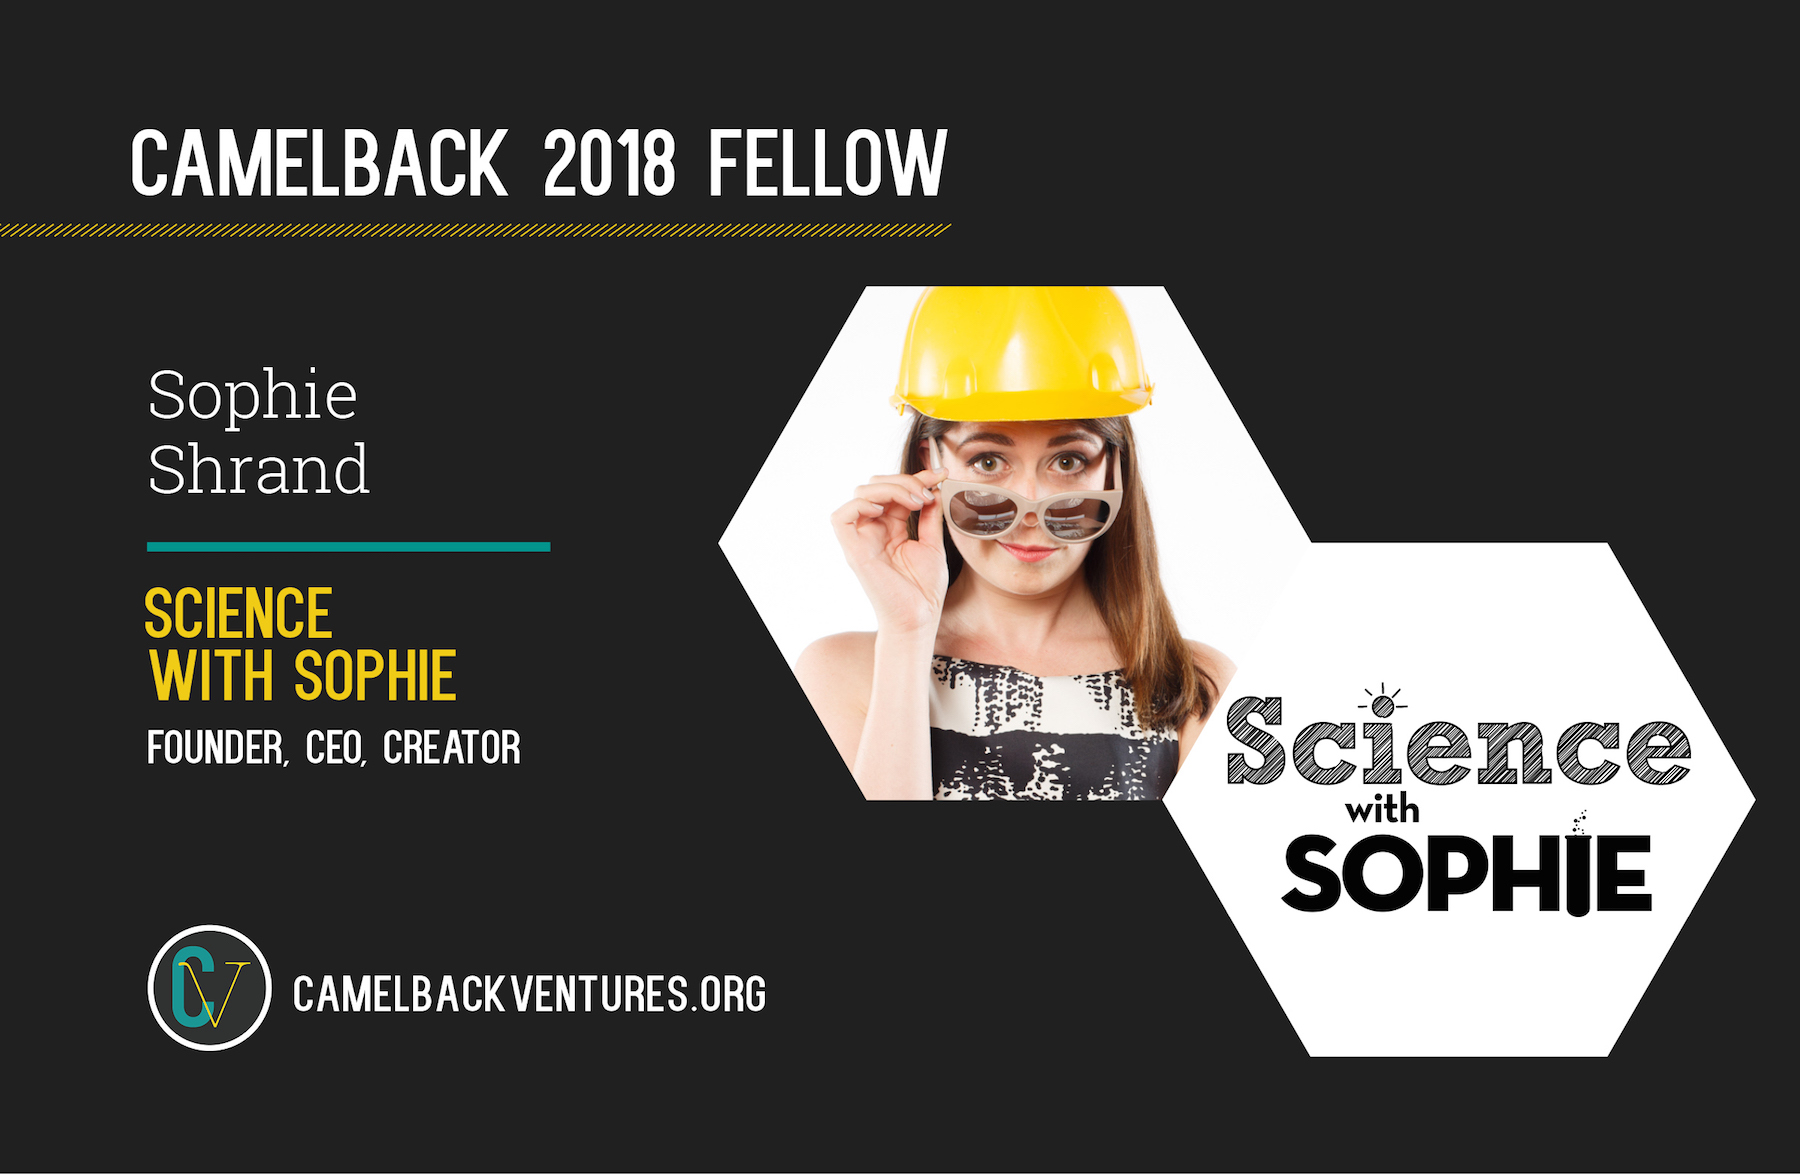 2018camelbackfellows_sophie.jpg